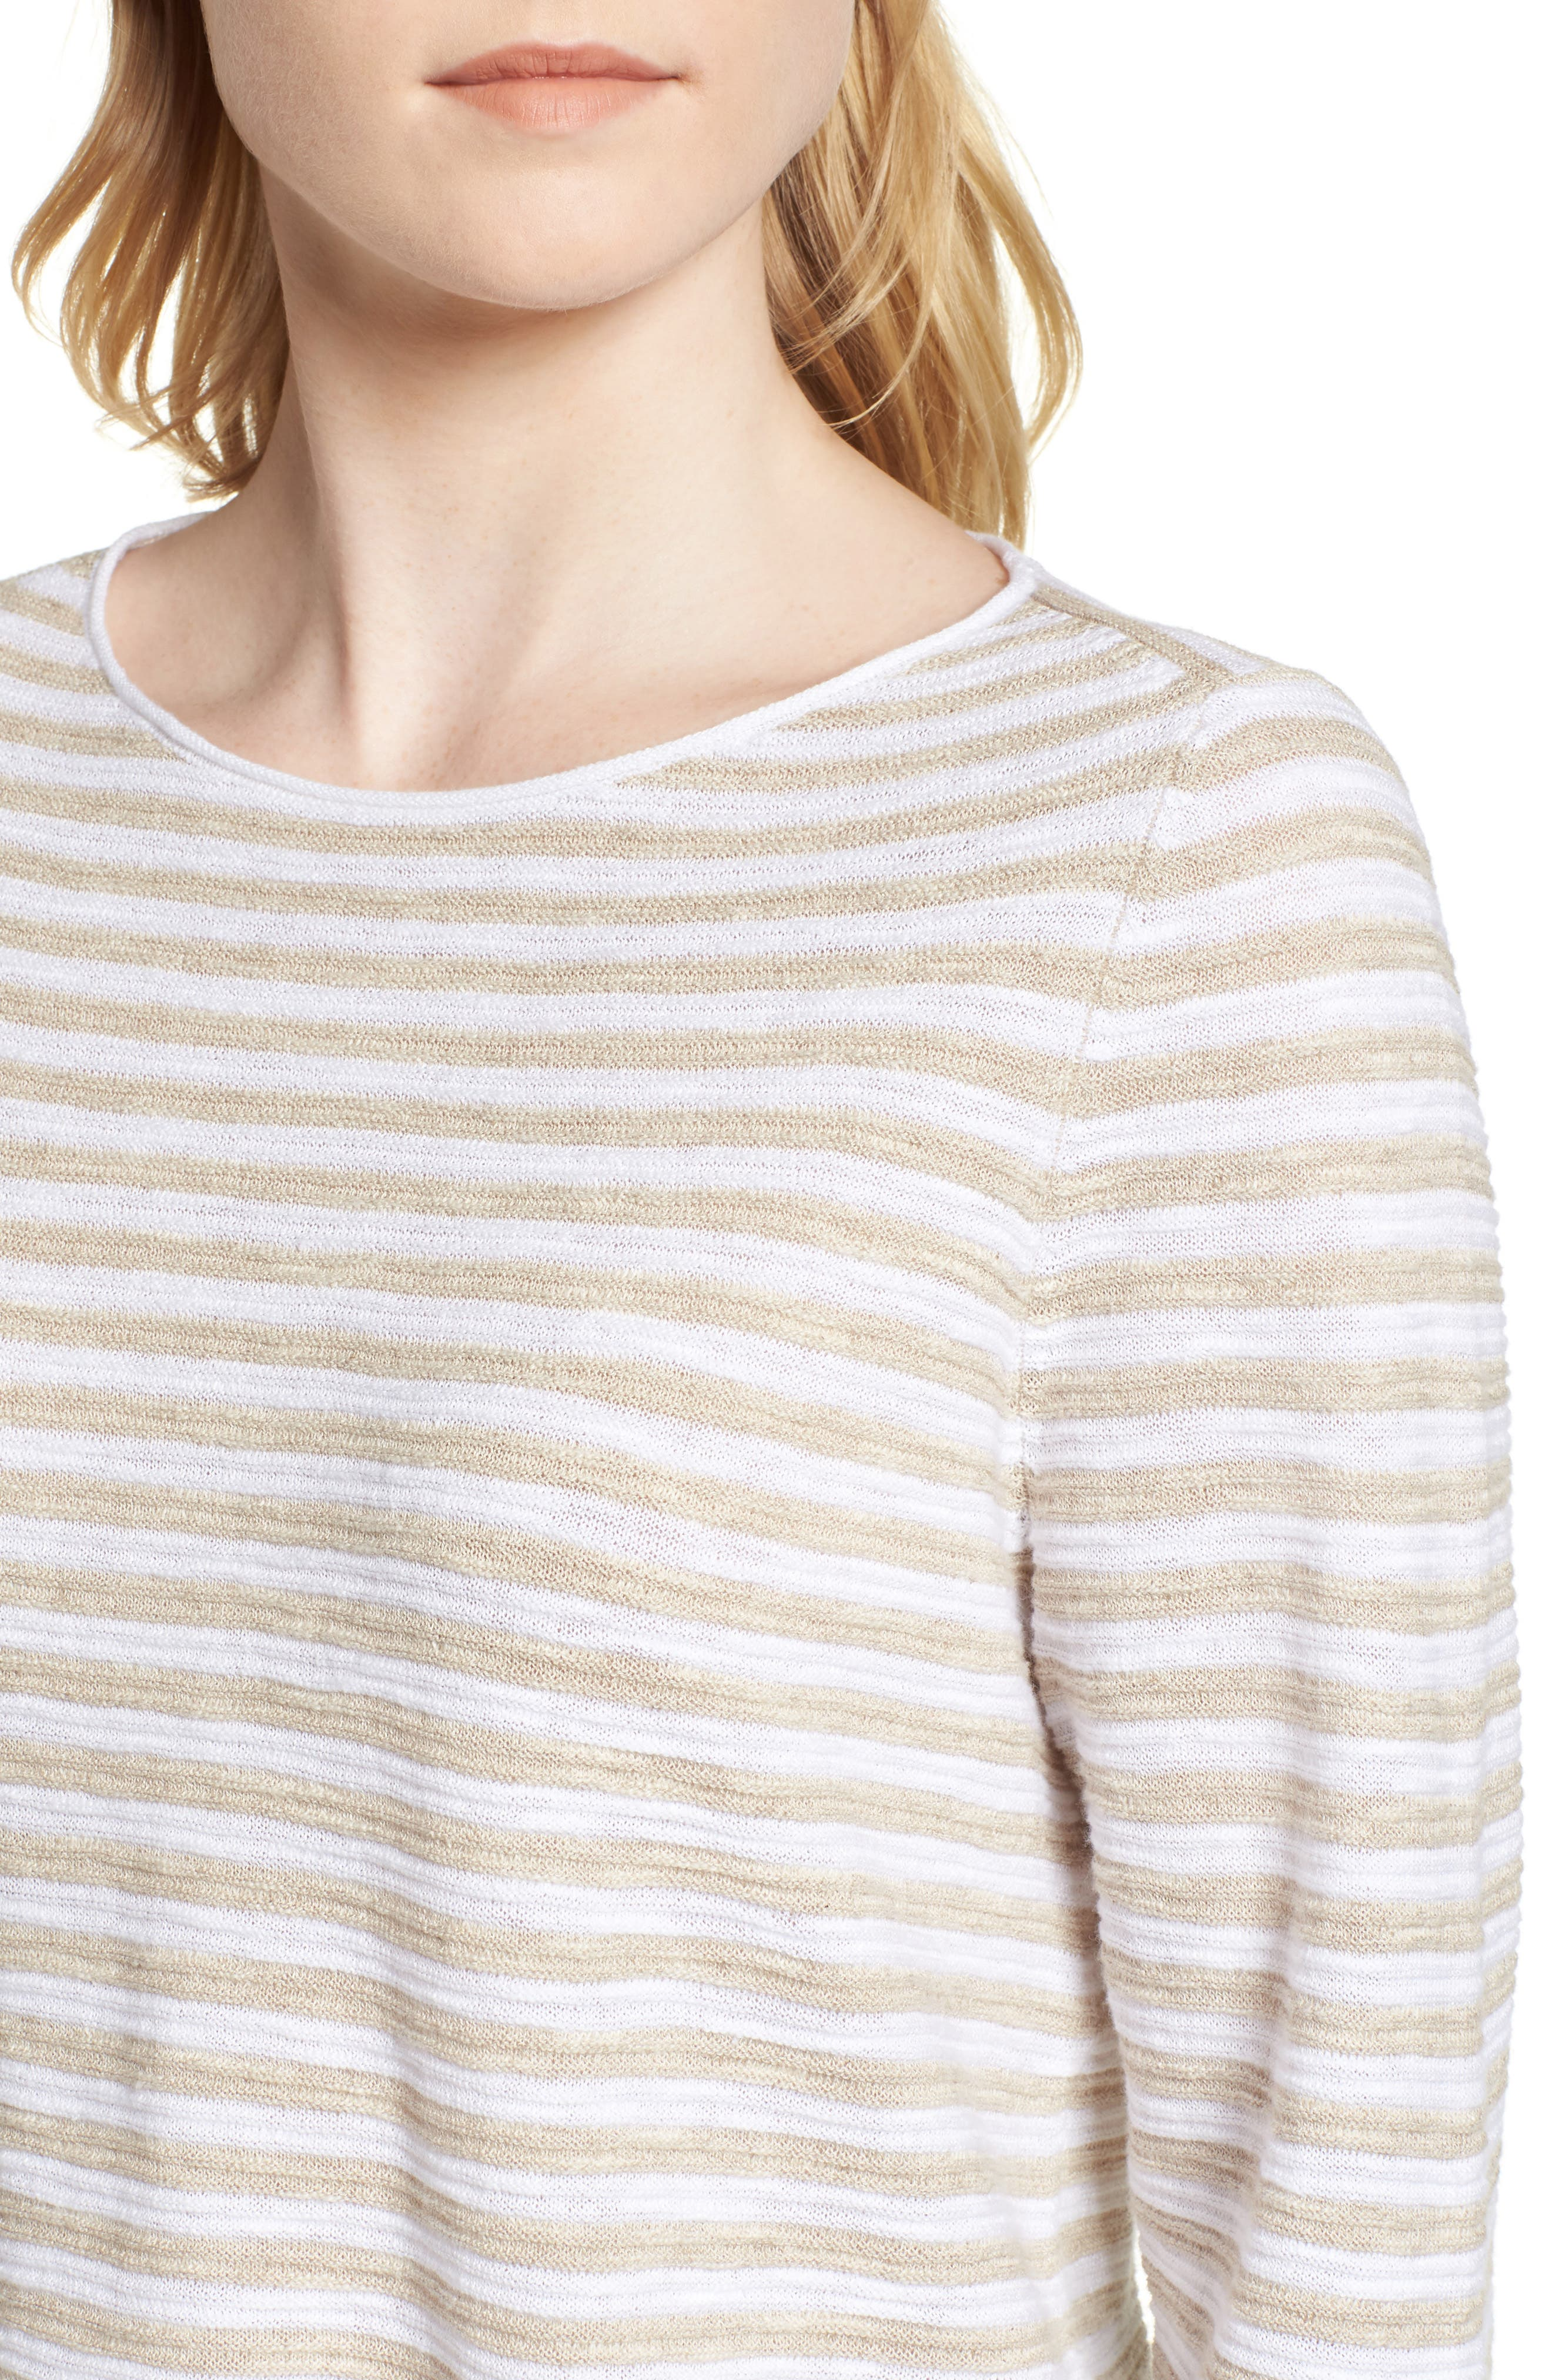 Stripe Organic Linen & Cotton Sweater,                             Alternate thumbnail 4, color,                             White/ Natural